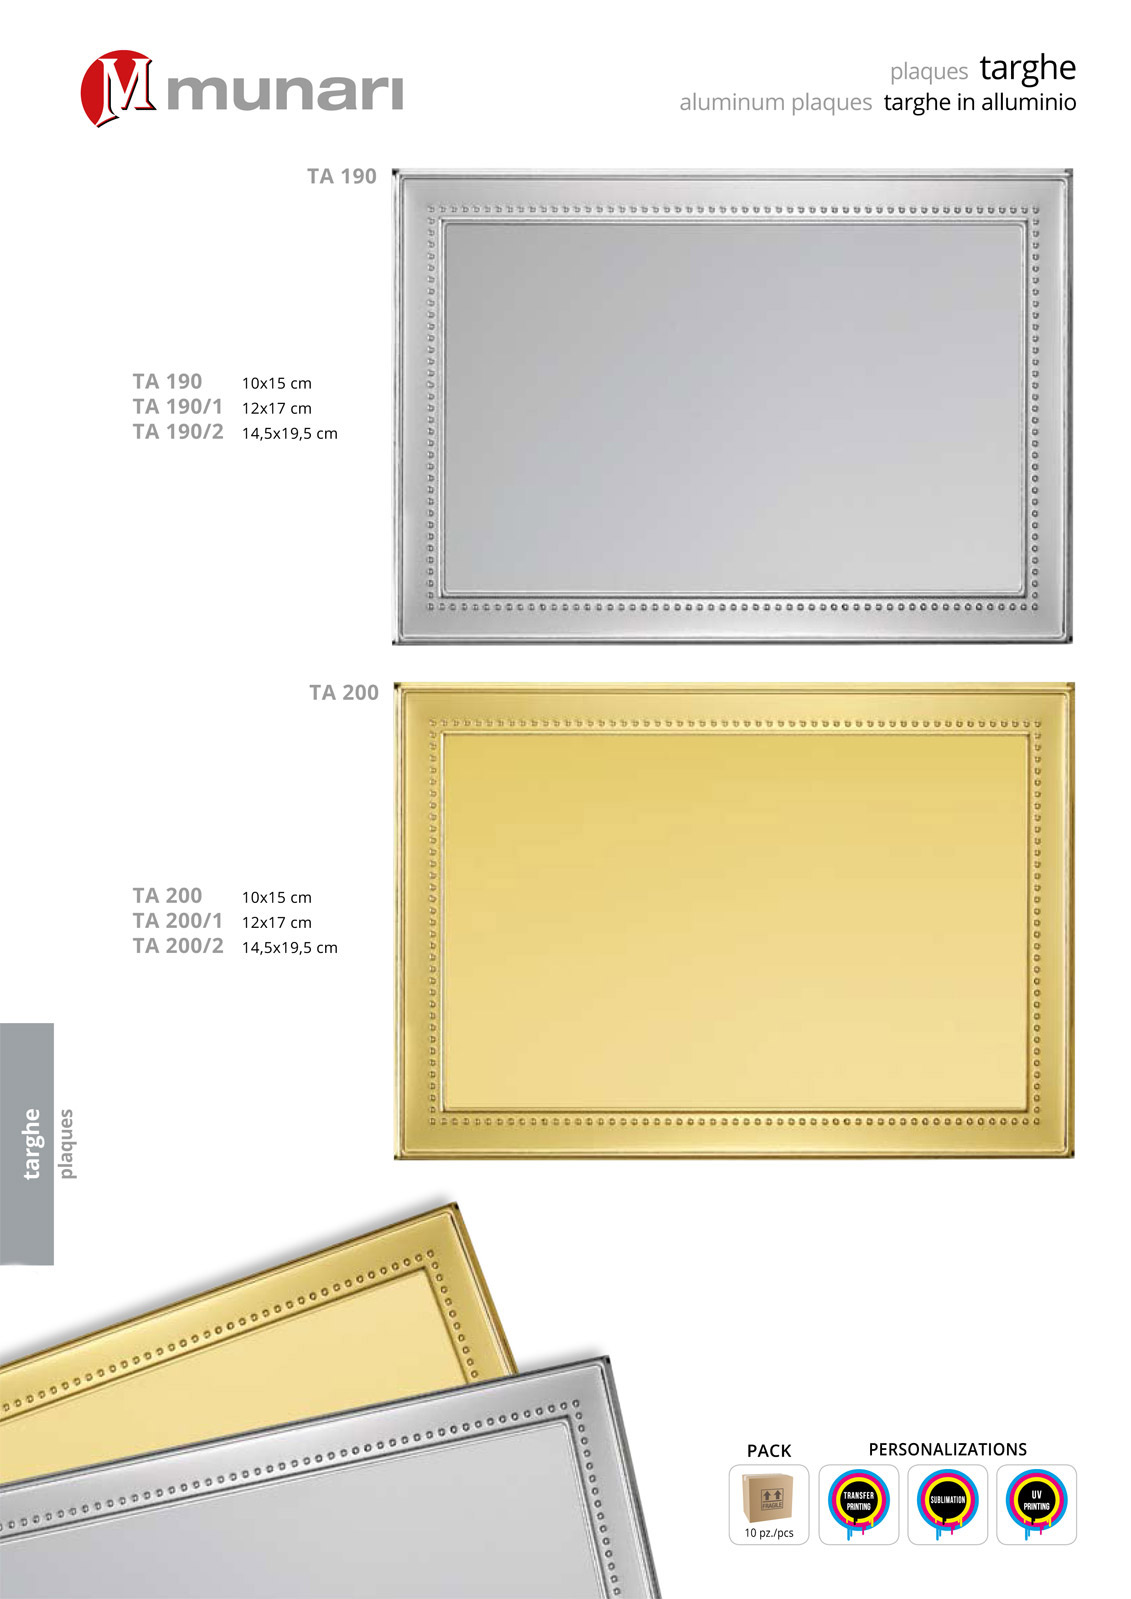 Aluminum plaques for sublimation or transfer printing series TA 200